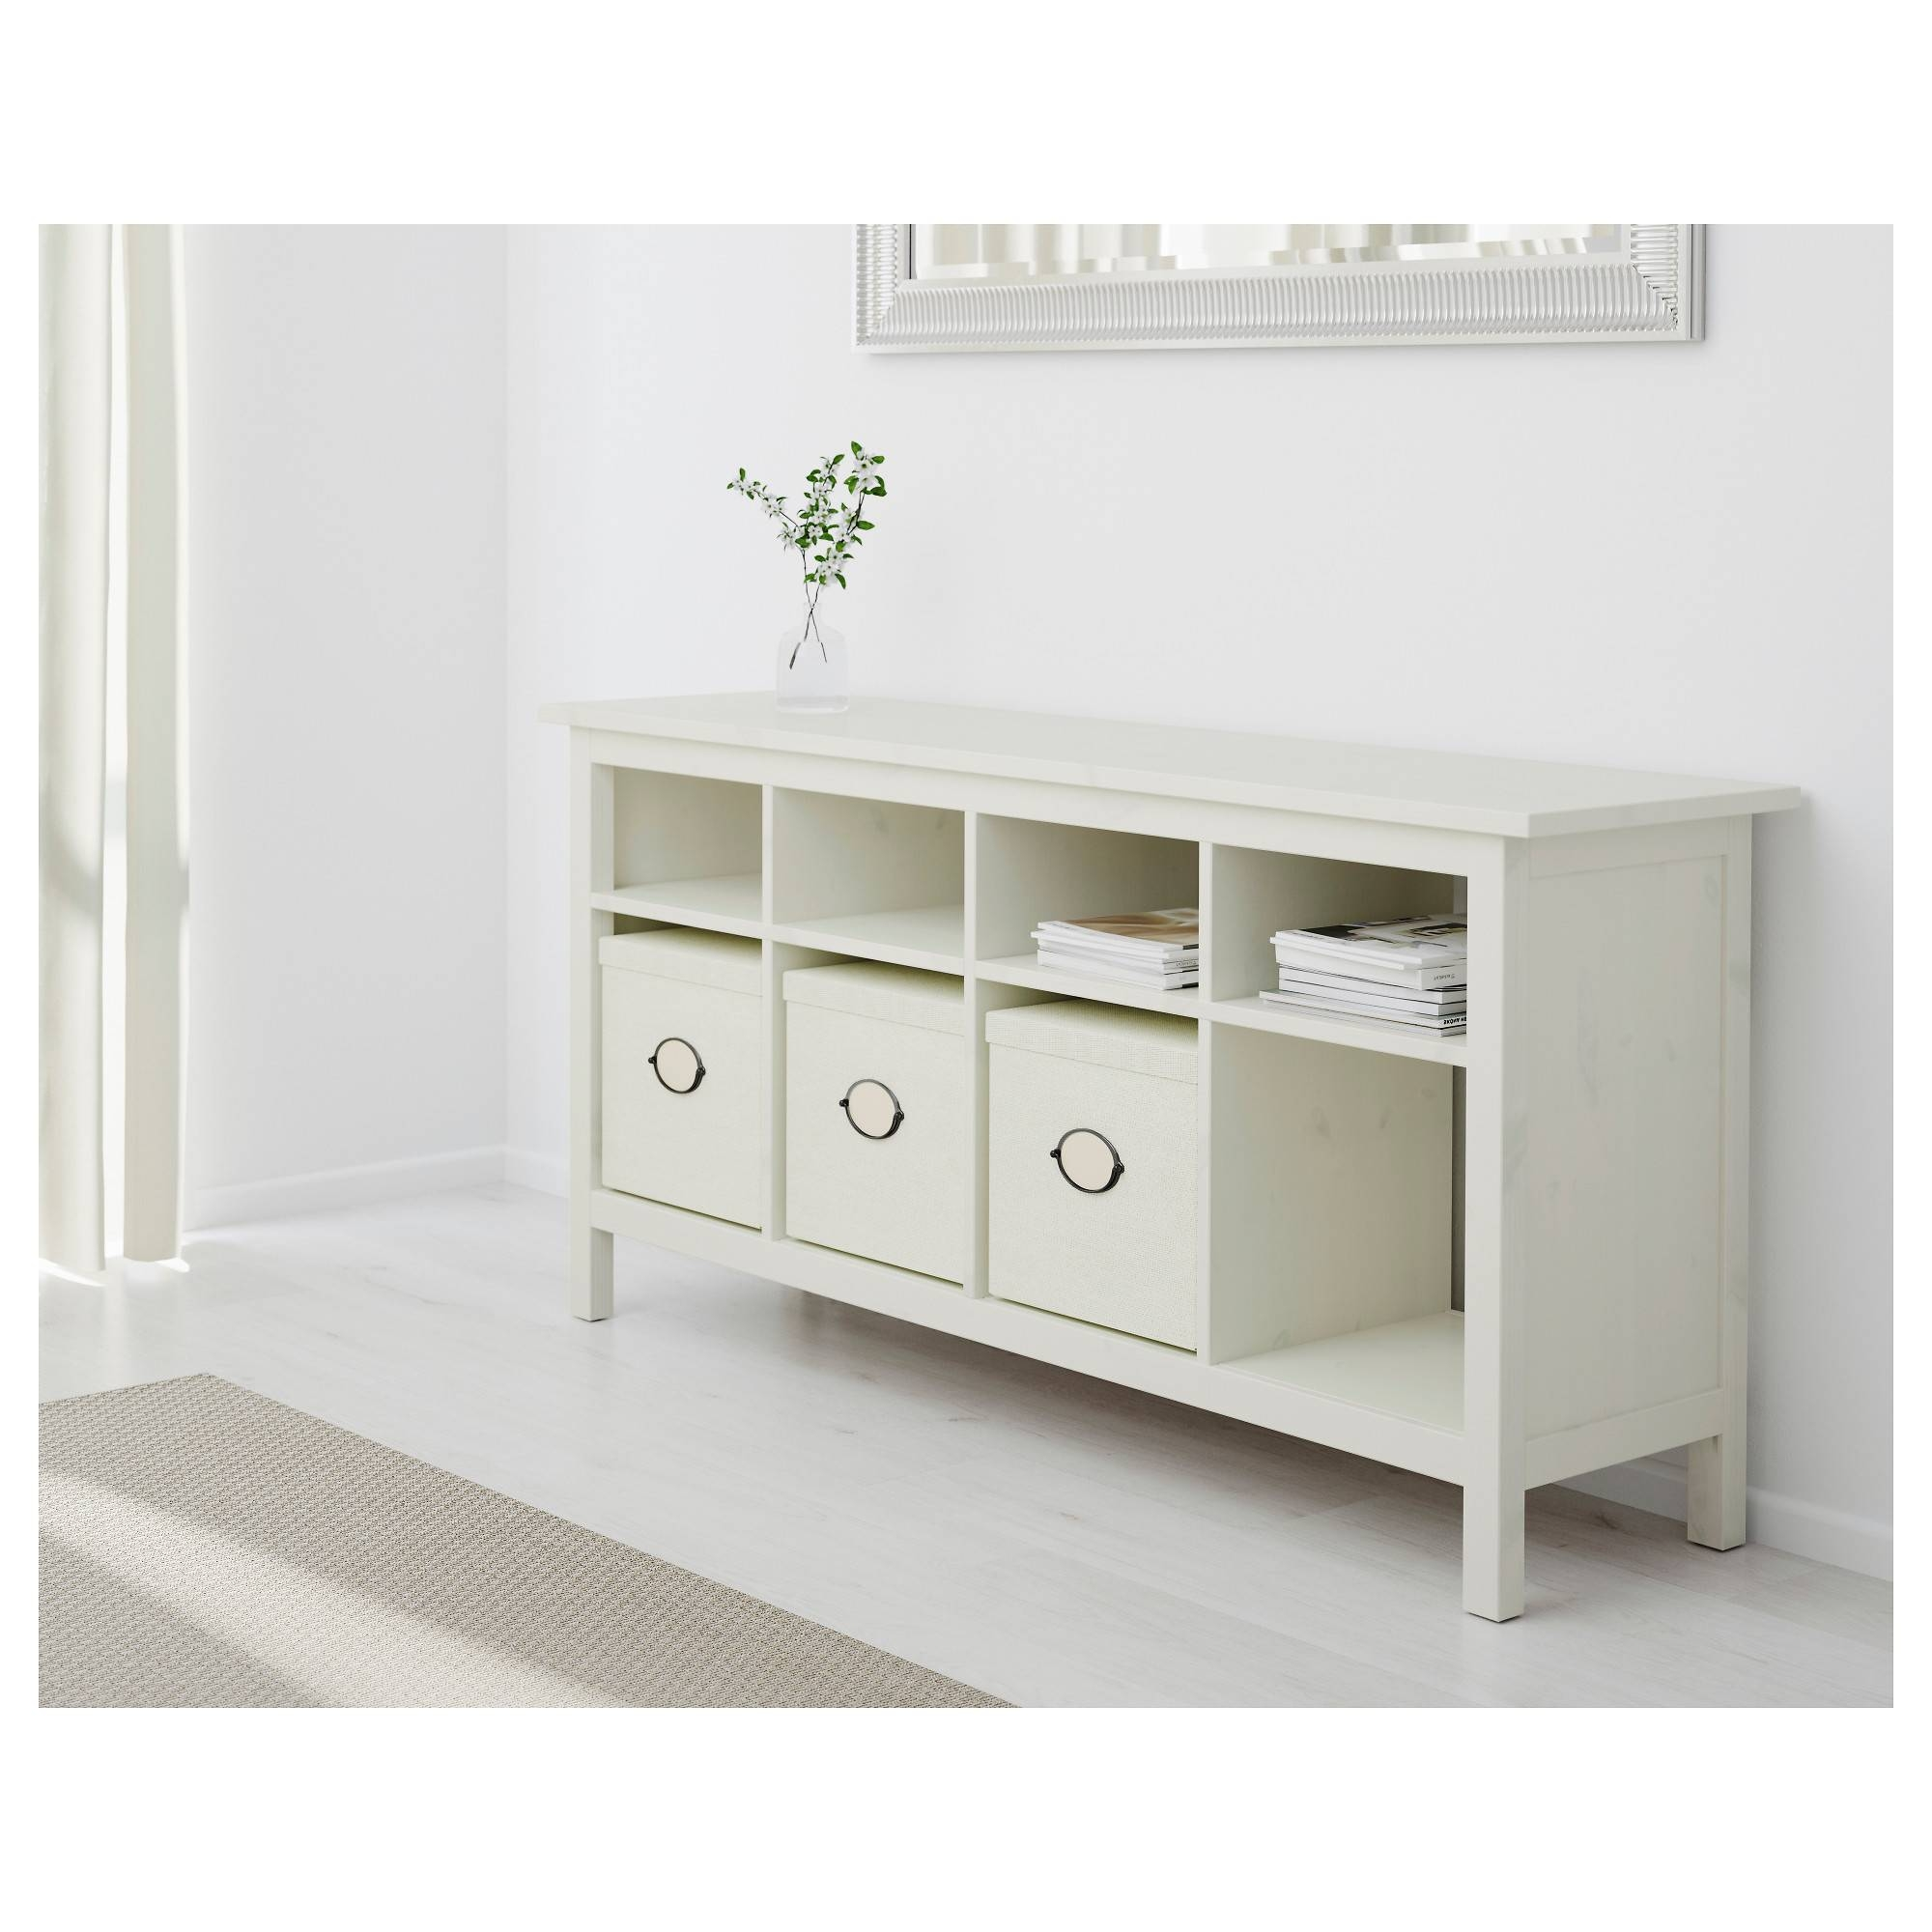 Hemnes Console Table White Stain 157X40 Cm - Ikea within Ikea Hemnes Sideboards (Image 3 of 15)